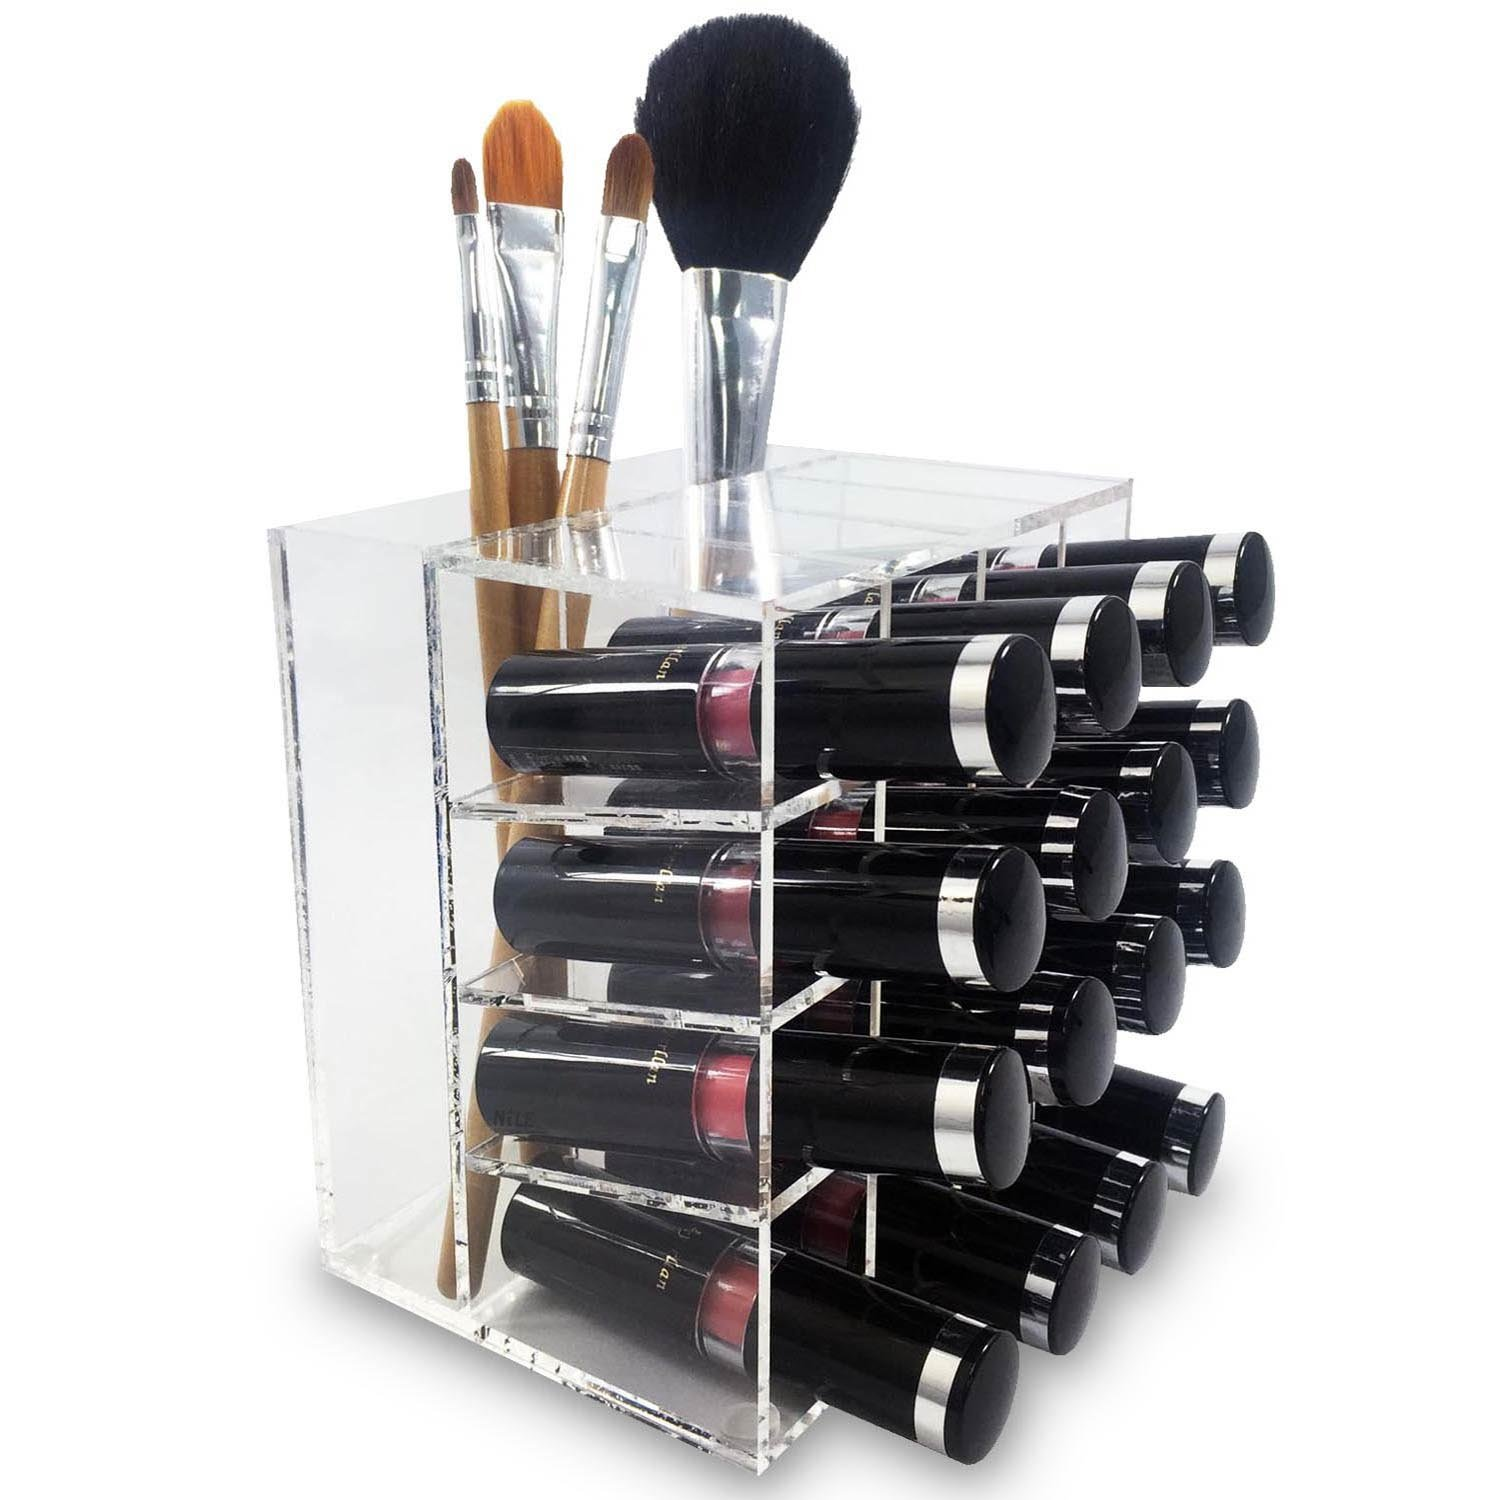 Ikee Design Acrylic Rotating 64 Lipstick Holder Organizer Spinning Lipstick Tower Lipgloss Holder with Removable Dividers COM063